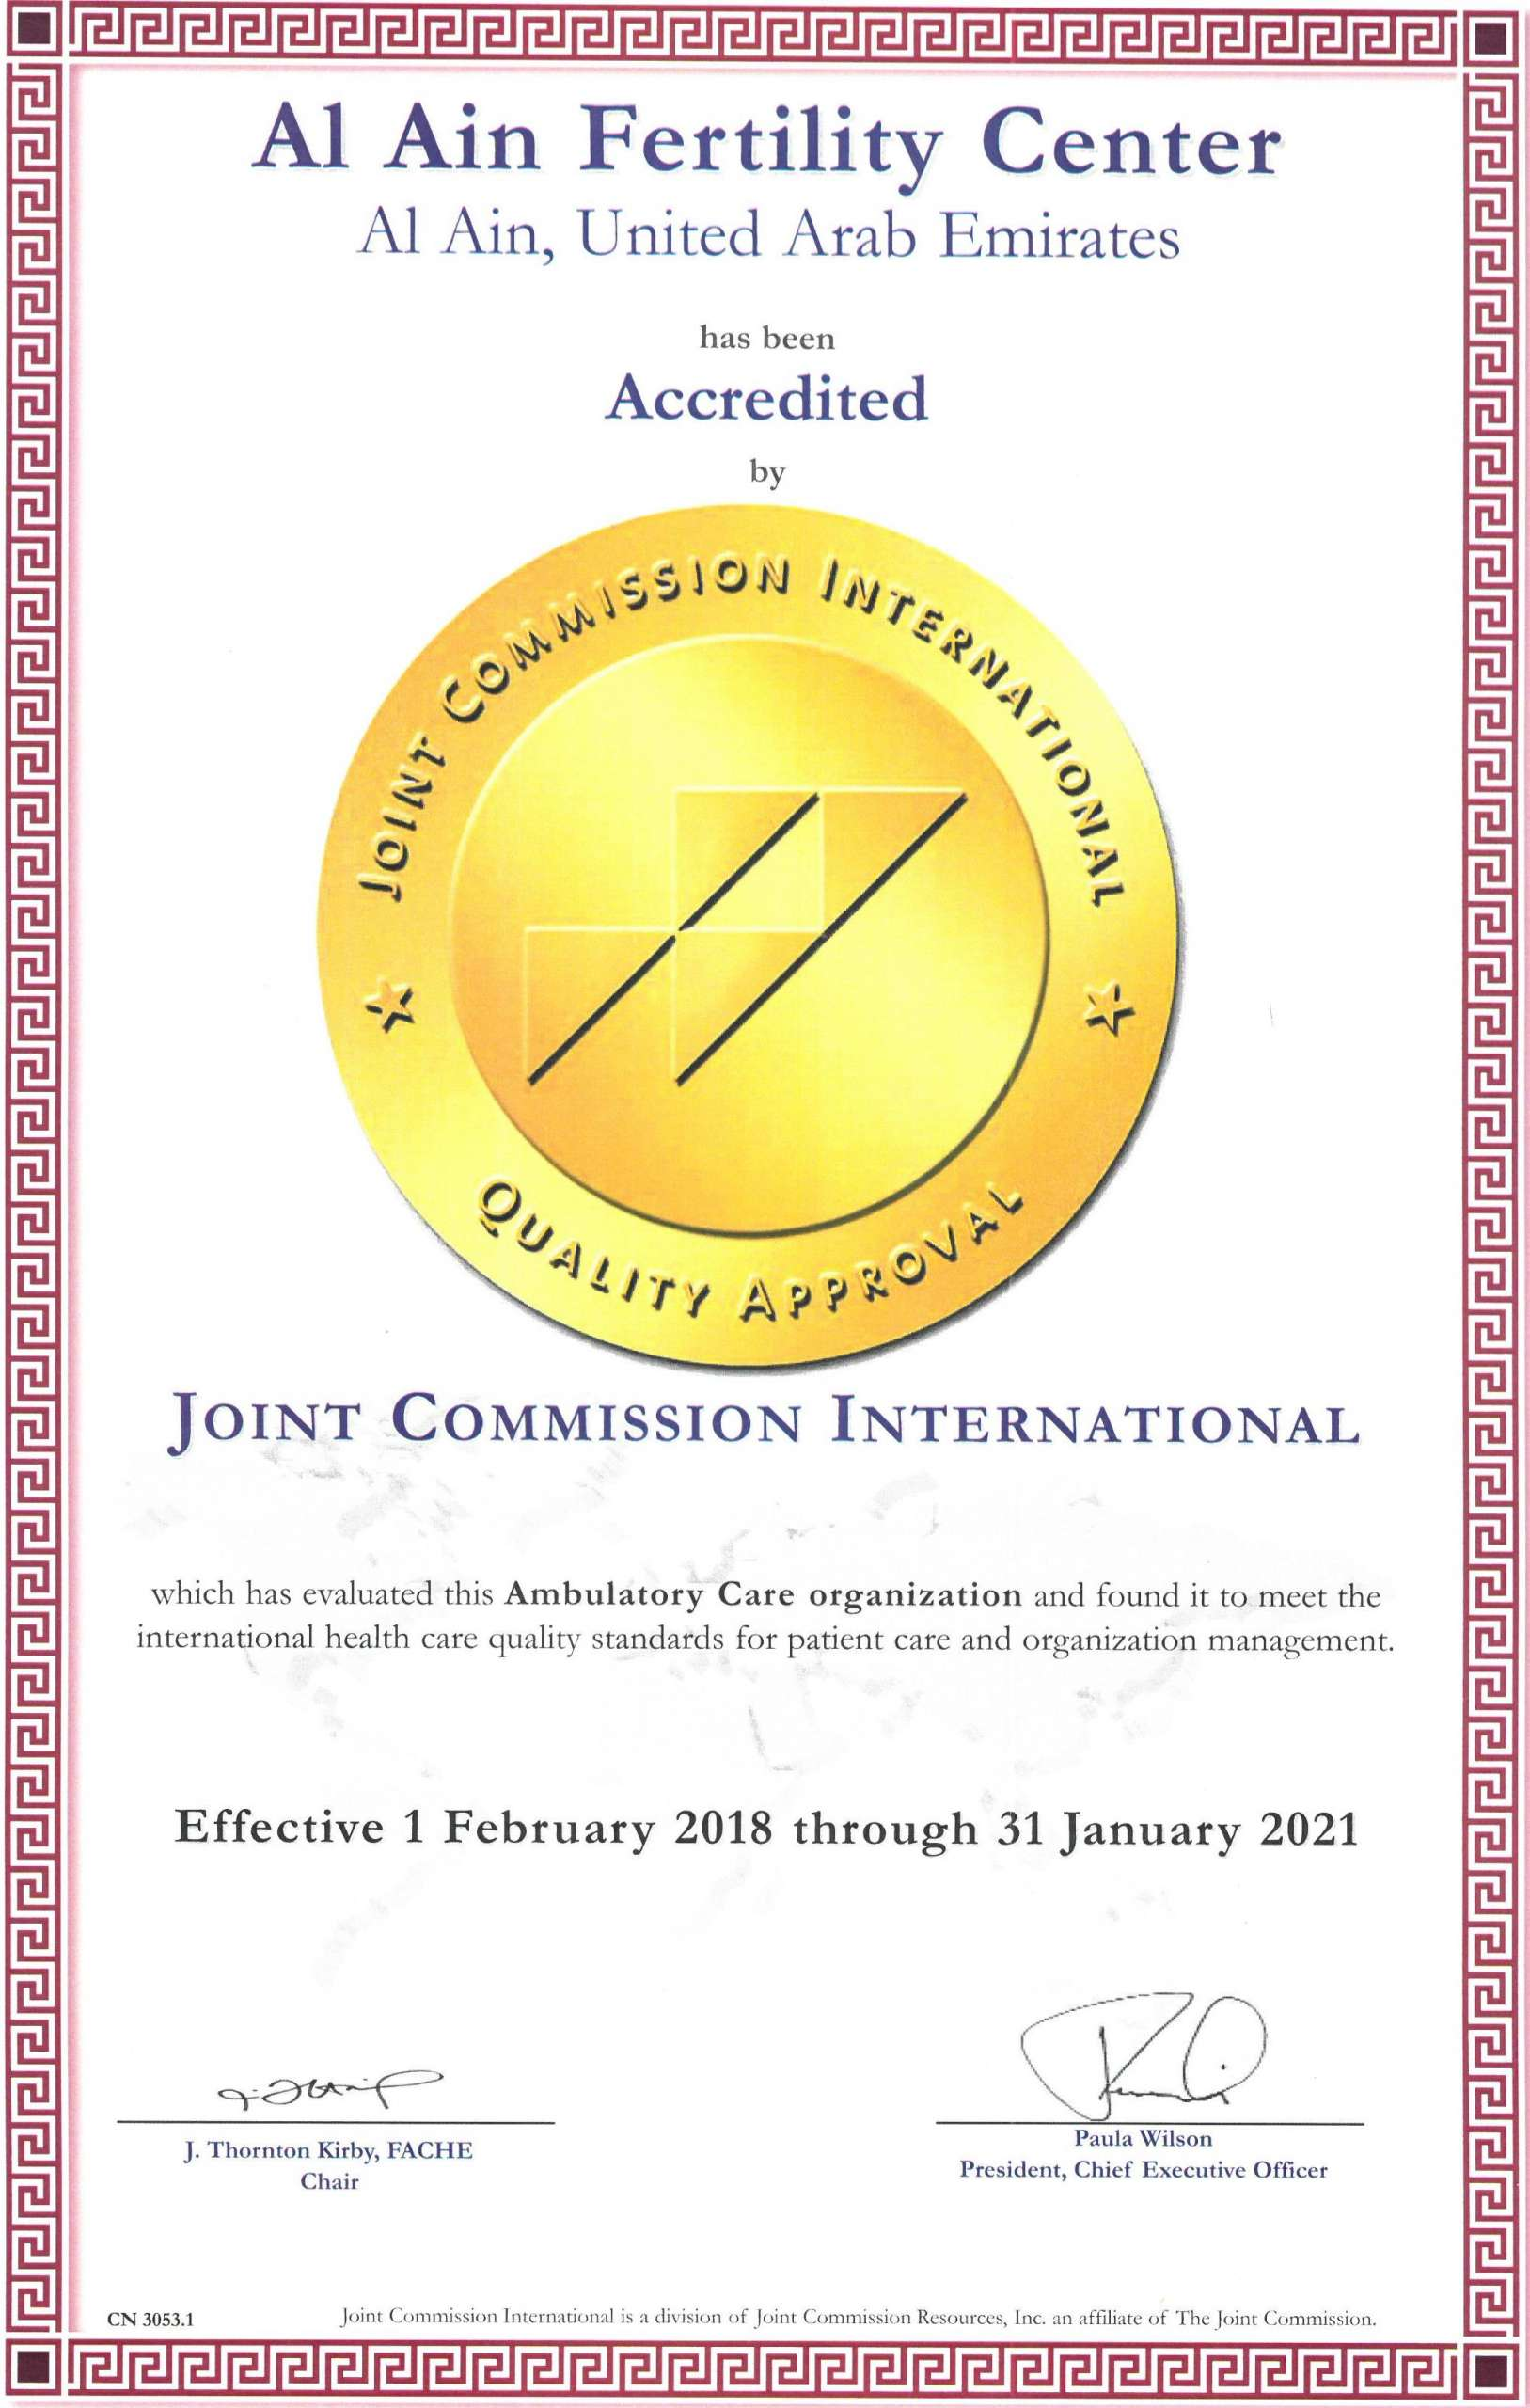 AAFC Accredited by Joint Commission International (JCI)